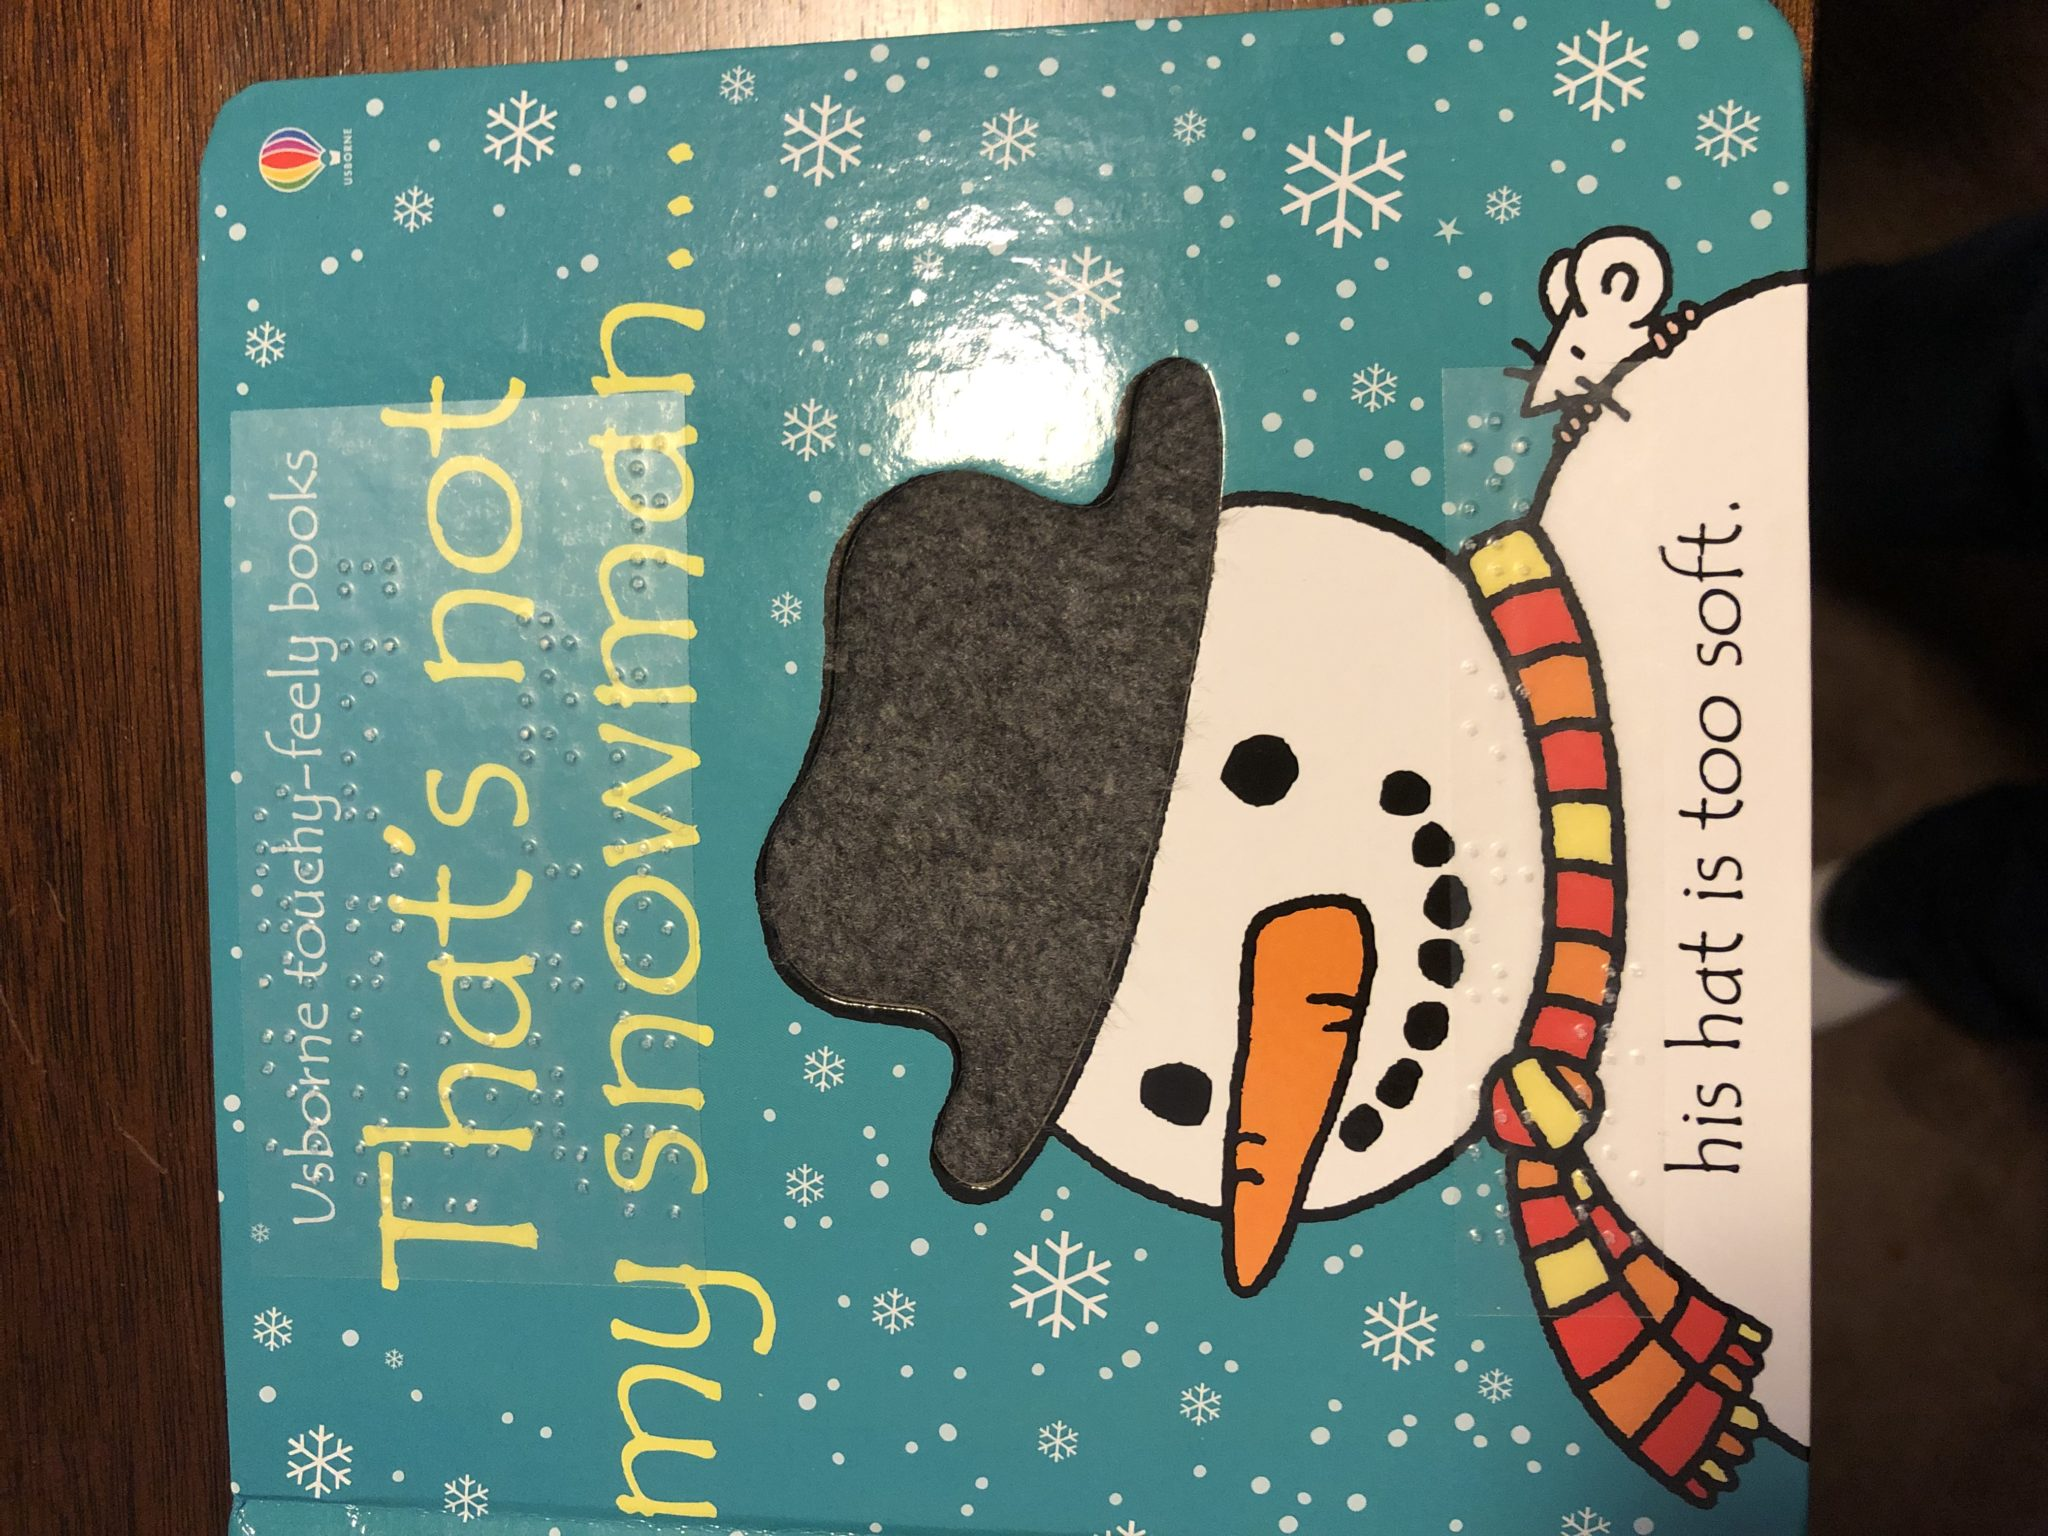 That's Not My Snowman book cover.